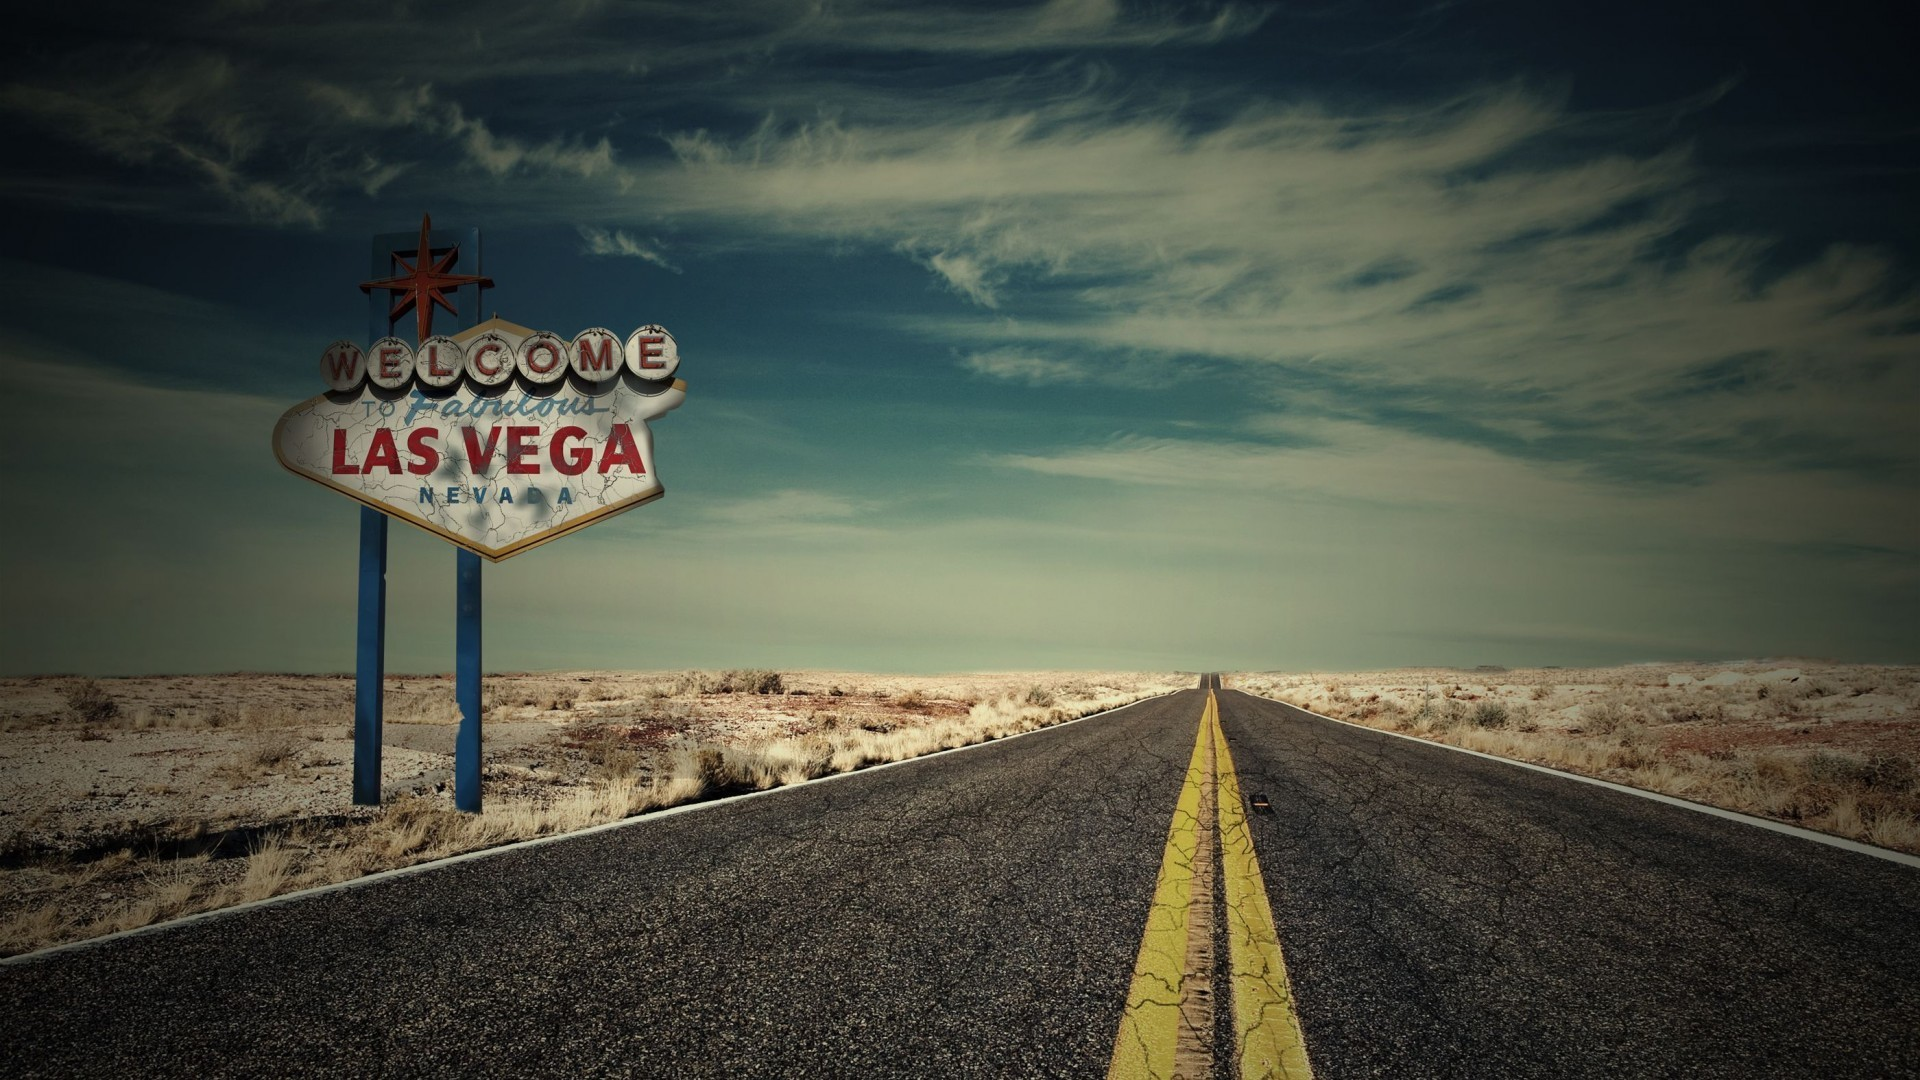 1920x1080 welcome-to-lagvegas-road-1080p-hd-wallpaper. dirt_road_under_stormy_clouds